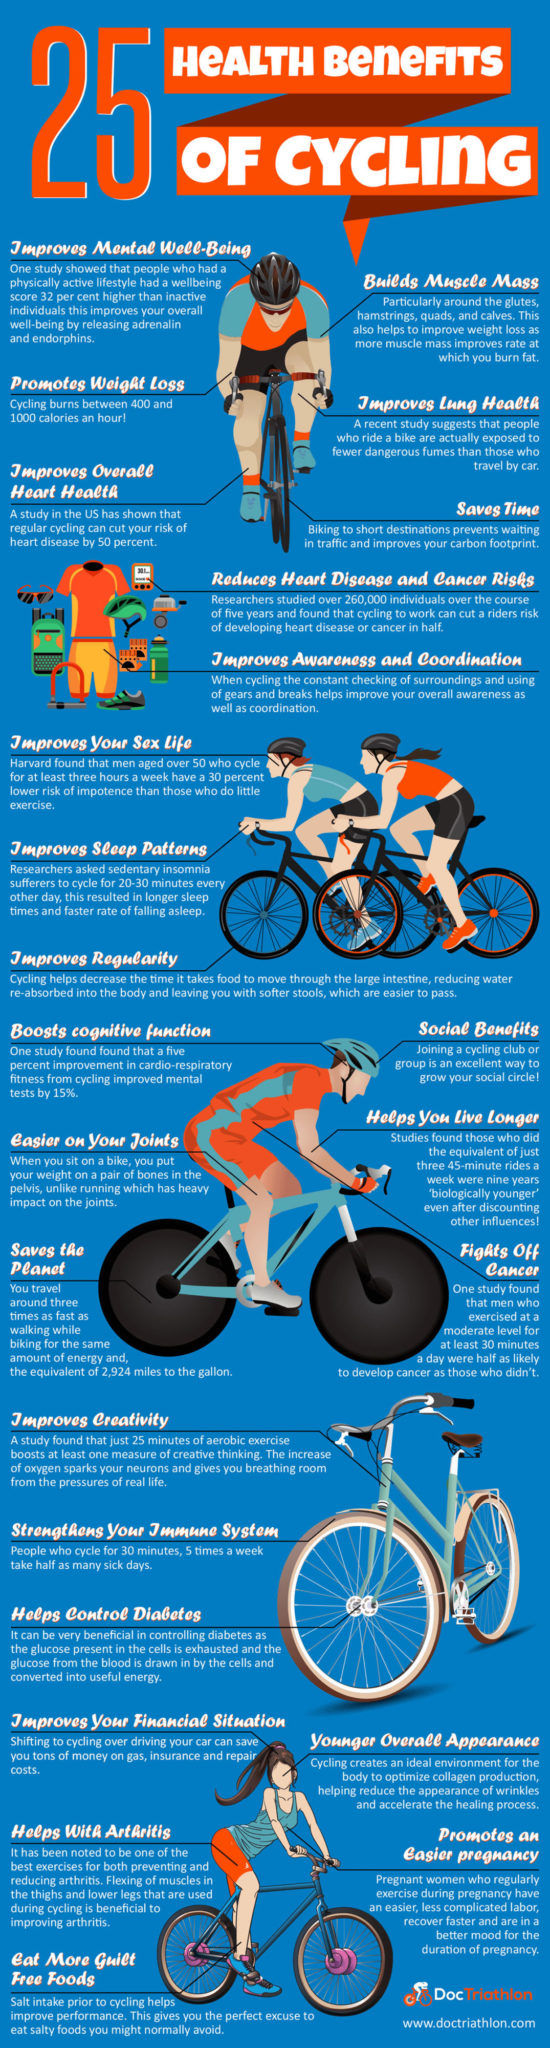 25 Health Benefits of Cycling